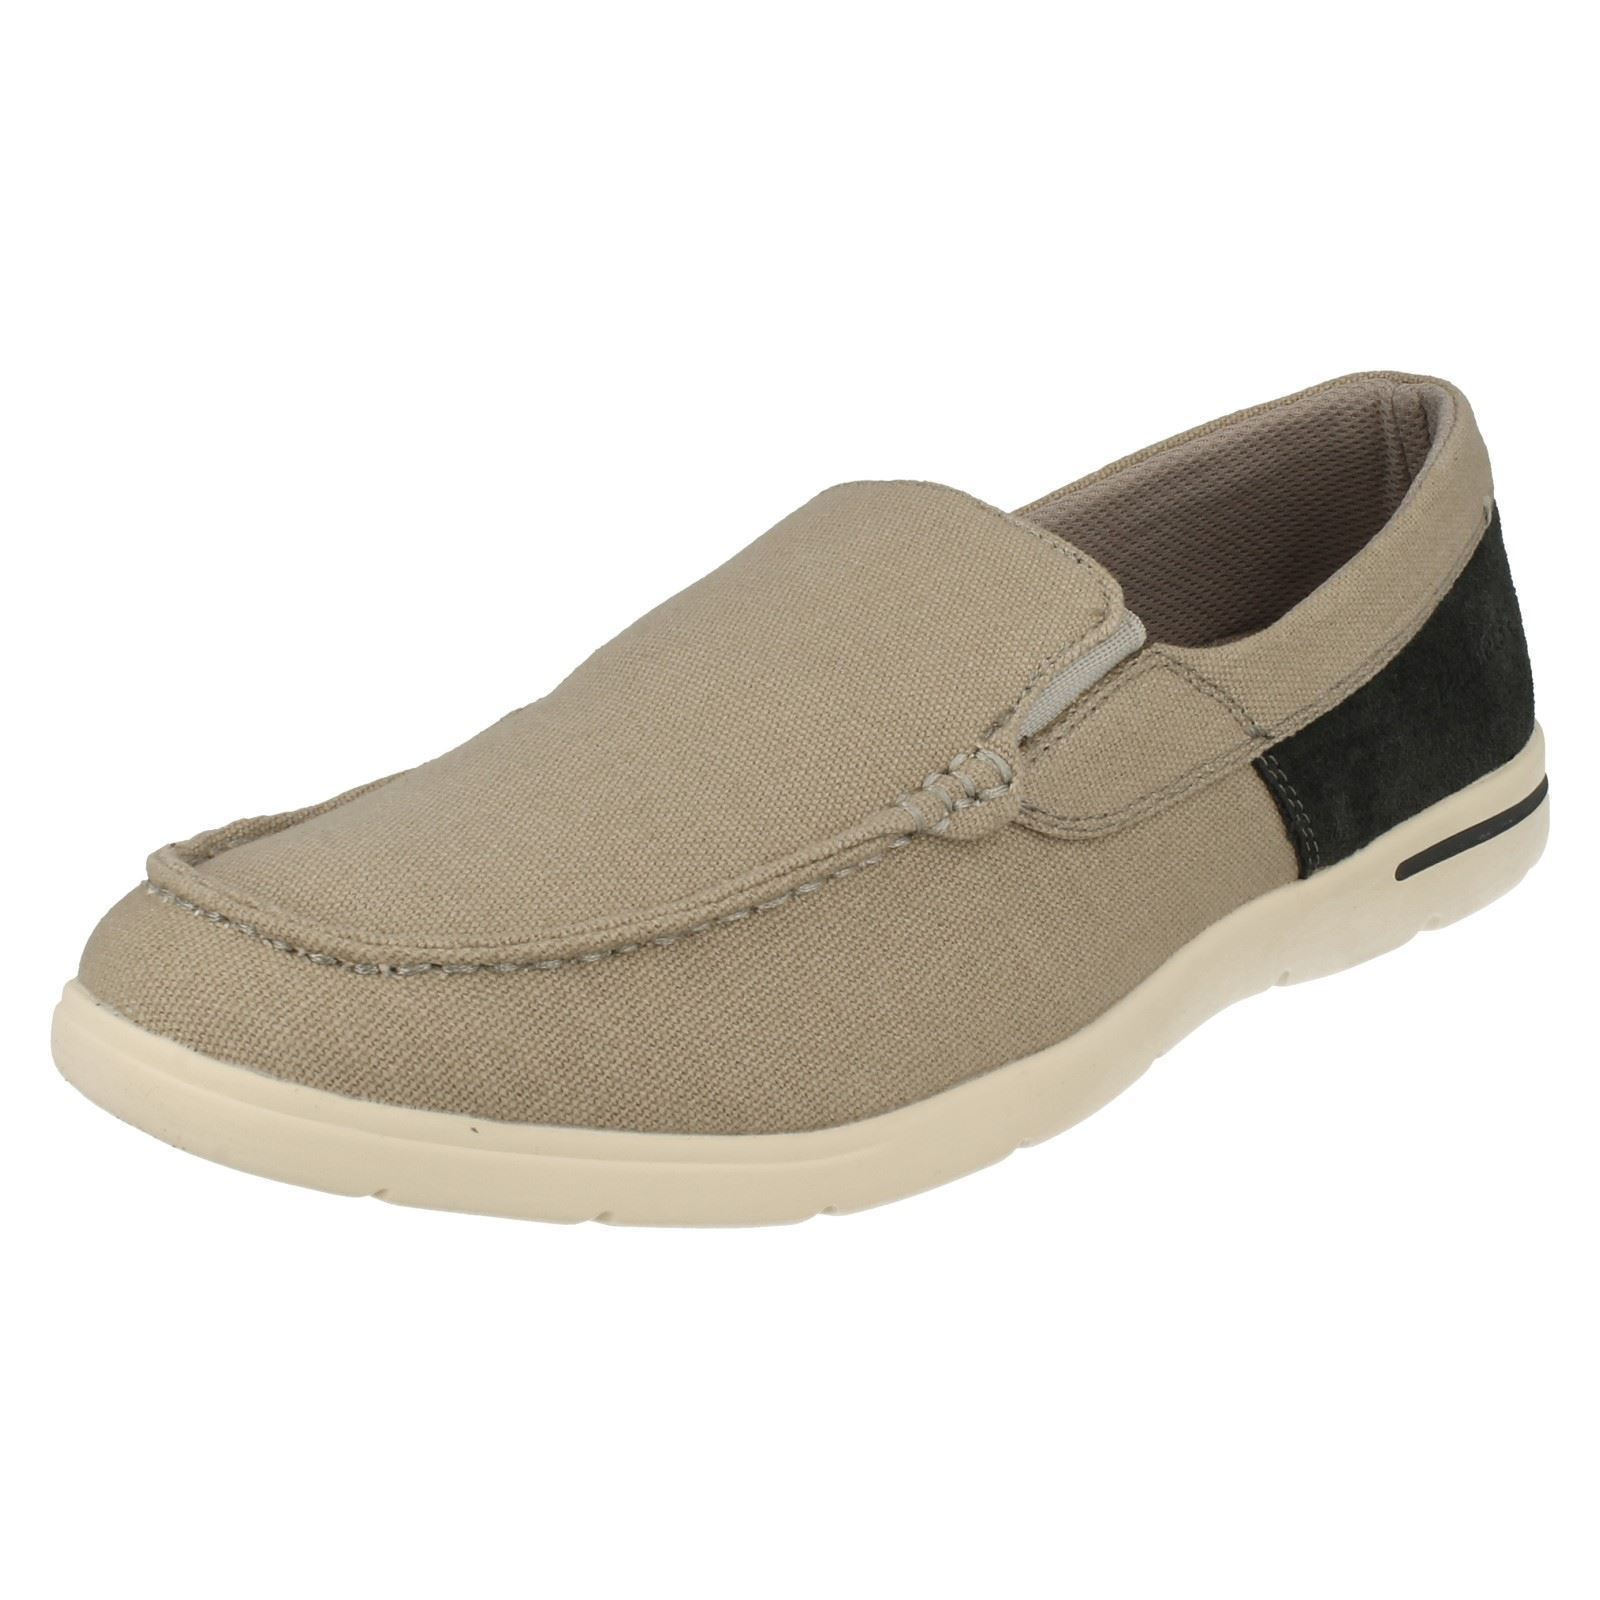 PADDERS MENS LEE ROUND TOE FLAT LIGHTWEIGHT CASUAL EVERYDAY SLIP ON PUMPS SHOES